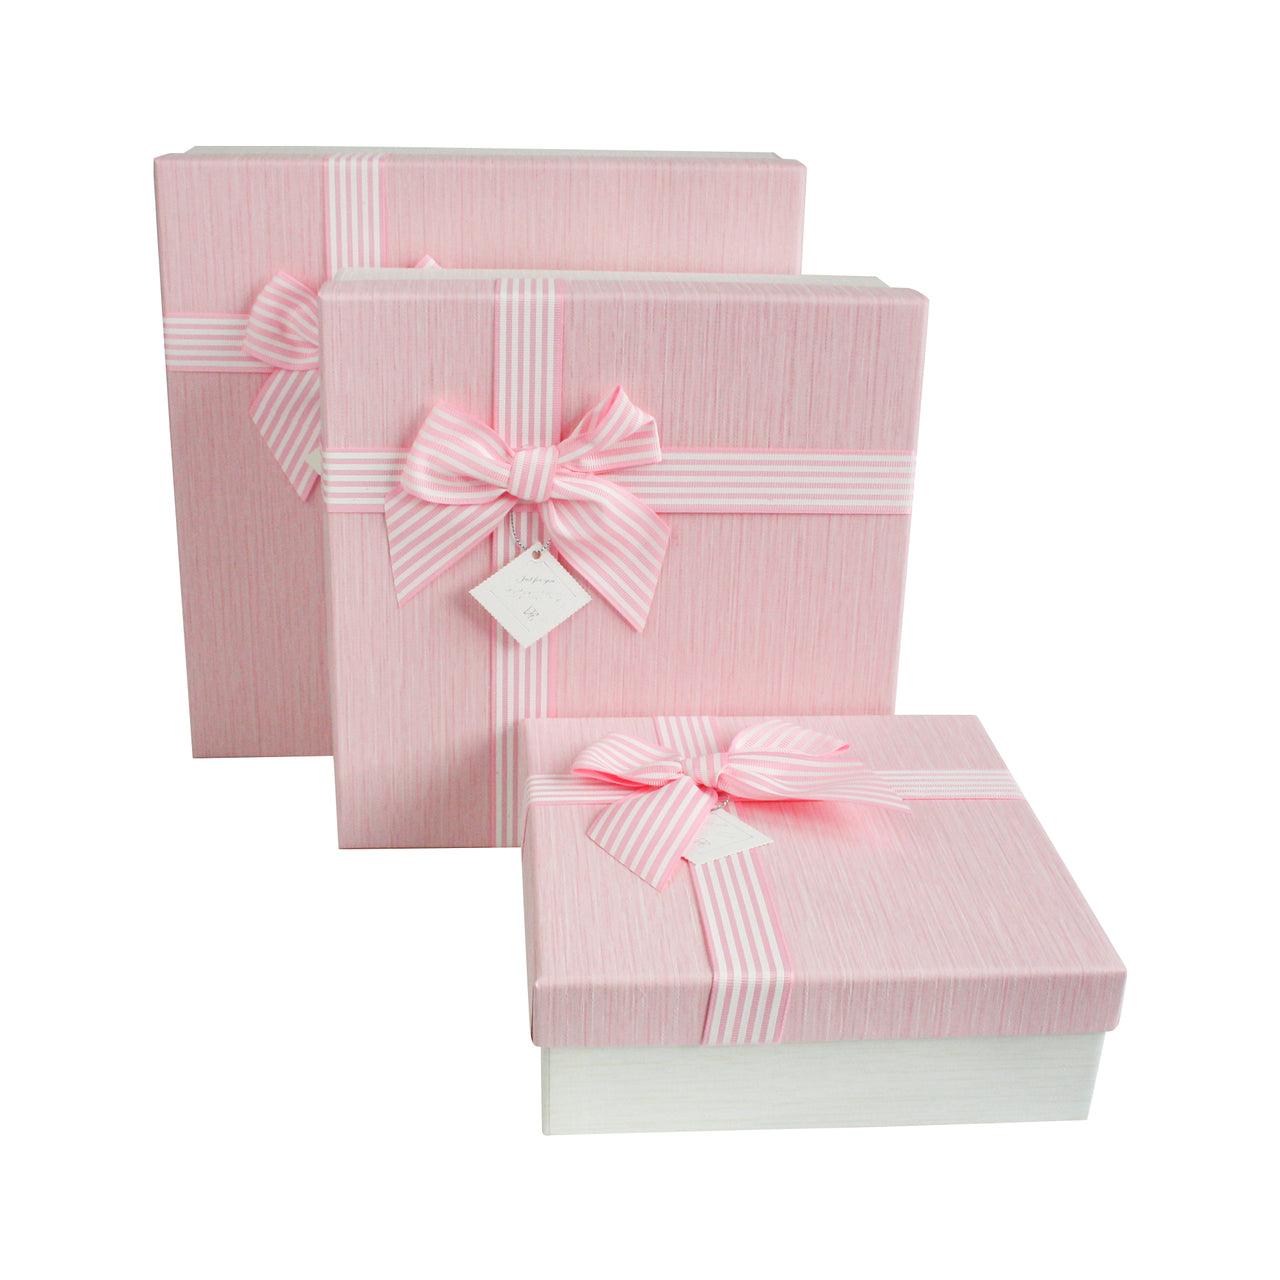 Cream Pink with Bow Gift Box - Set Of 3